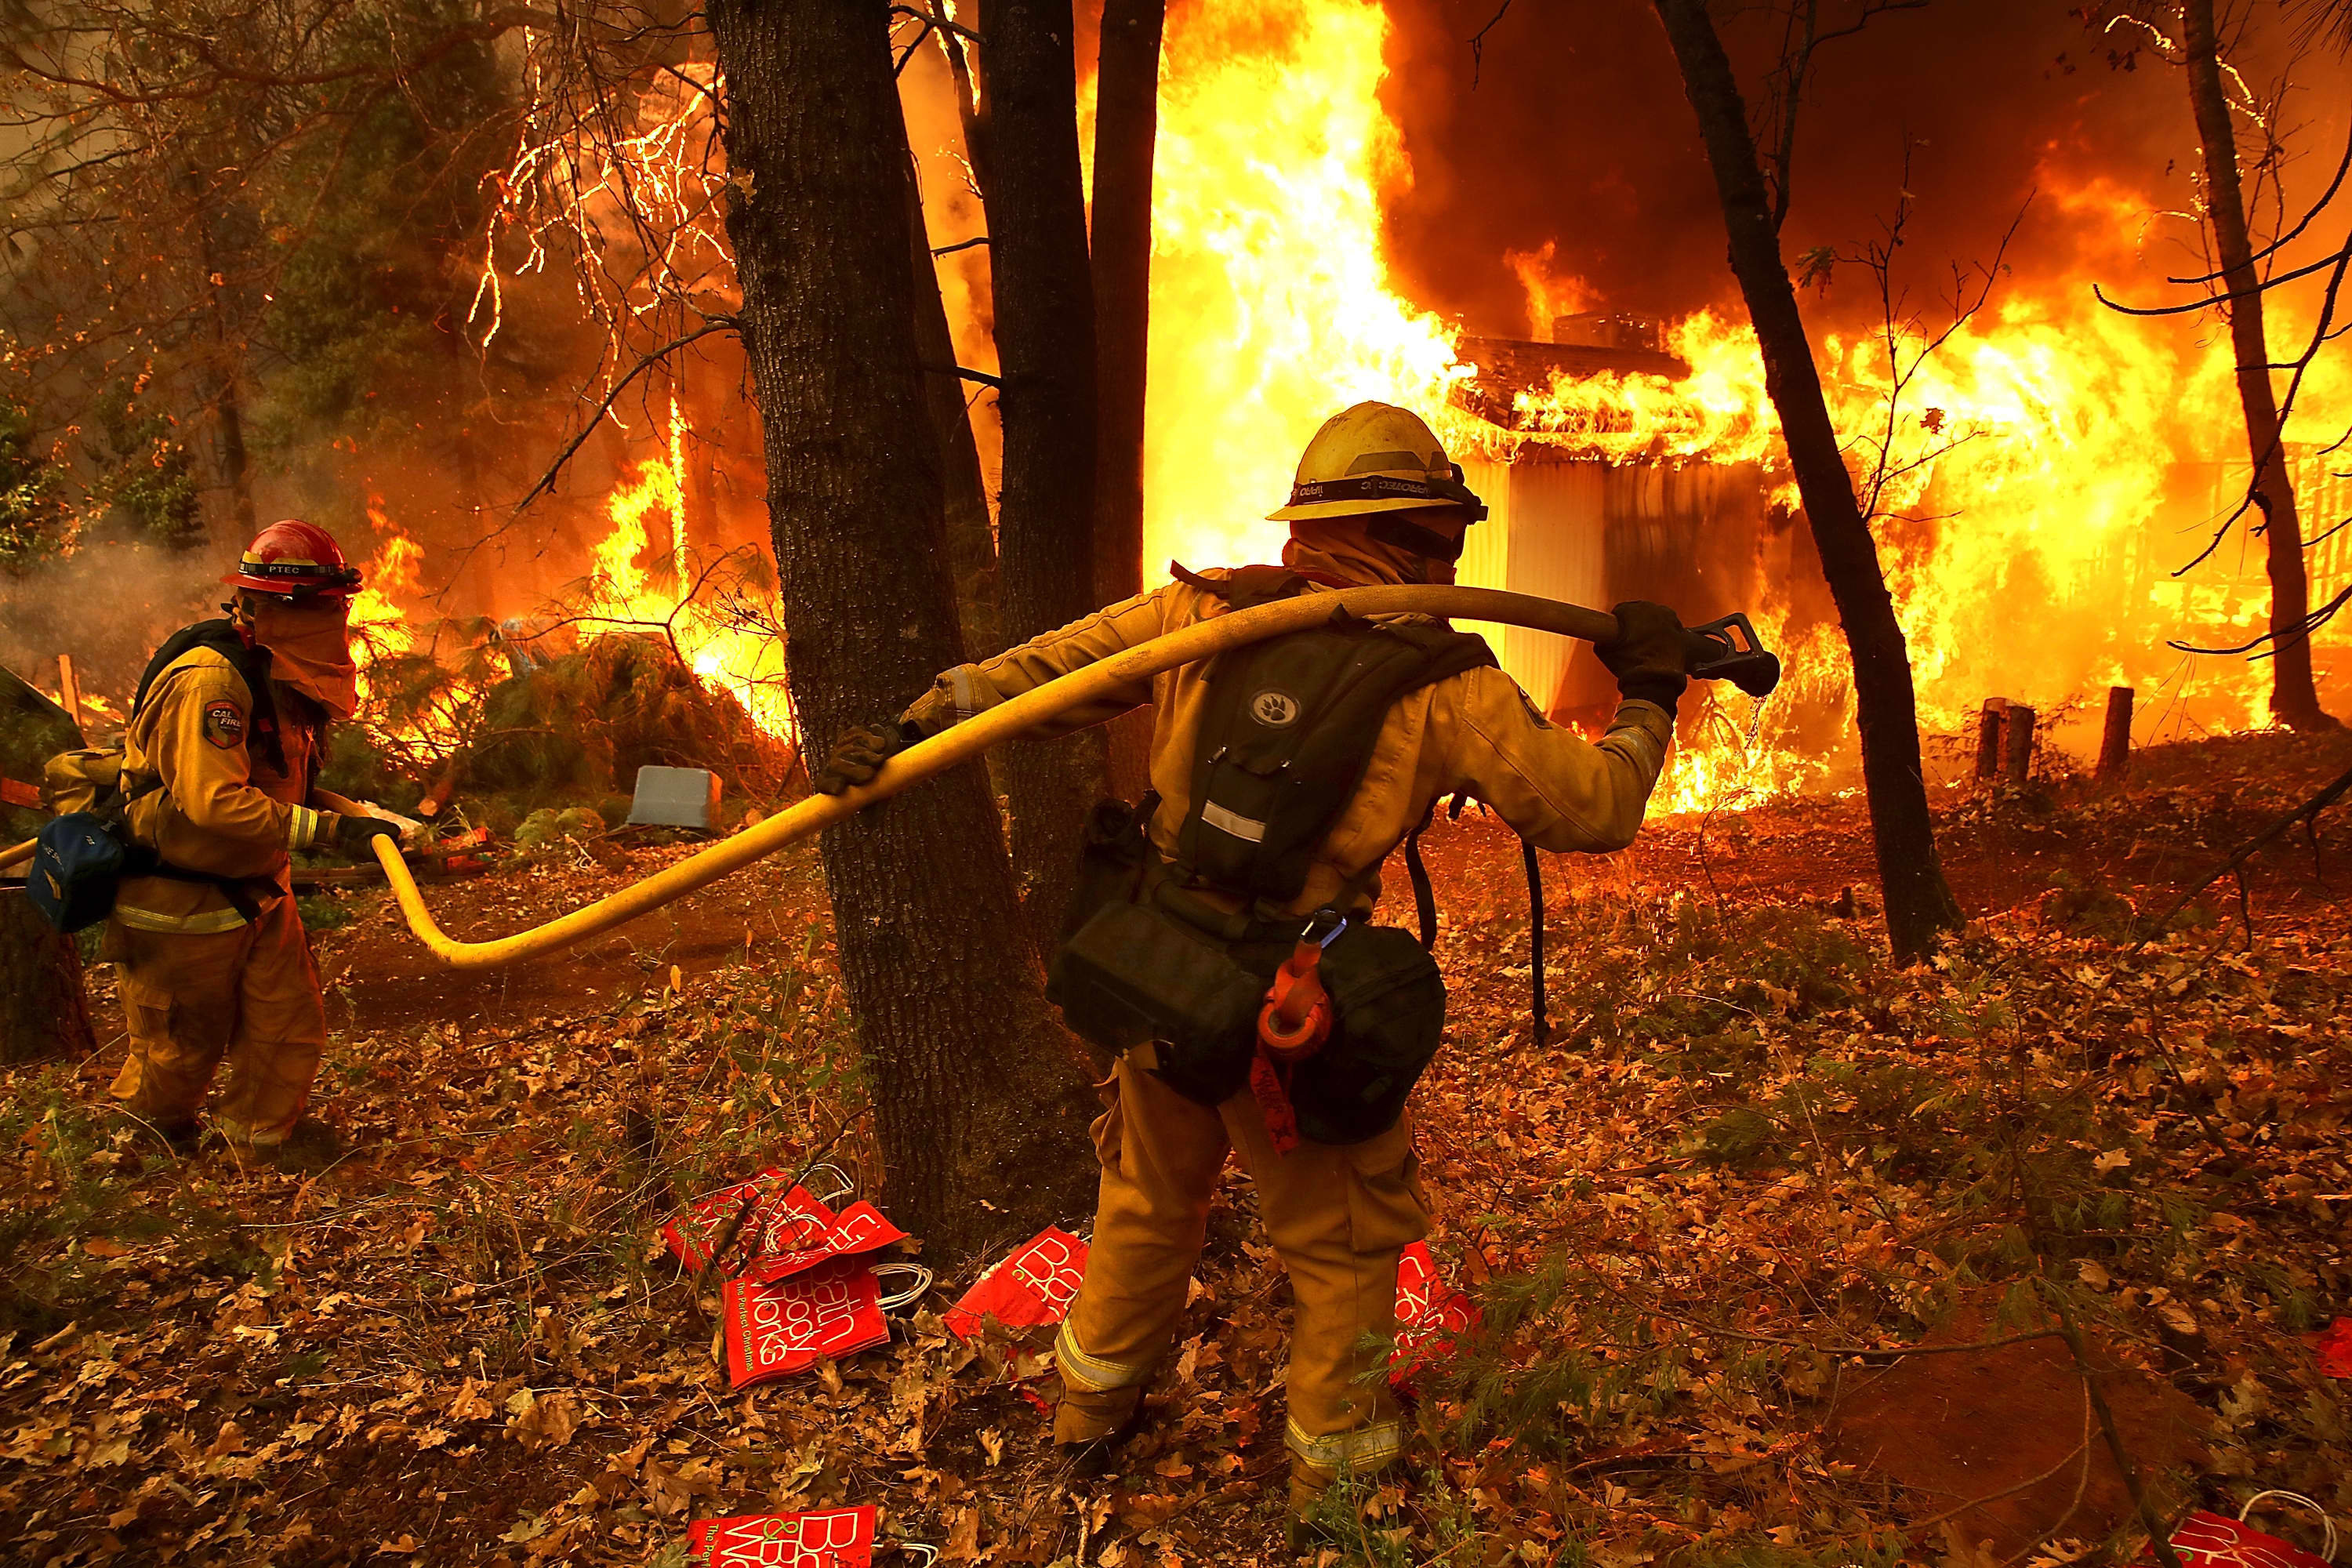 Coronavirus will obstruct emergency services for firefighters during wildfires